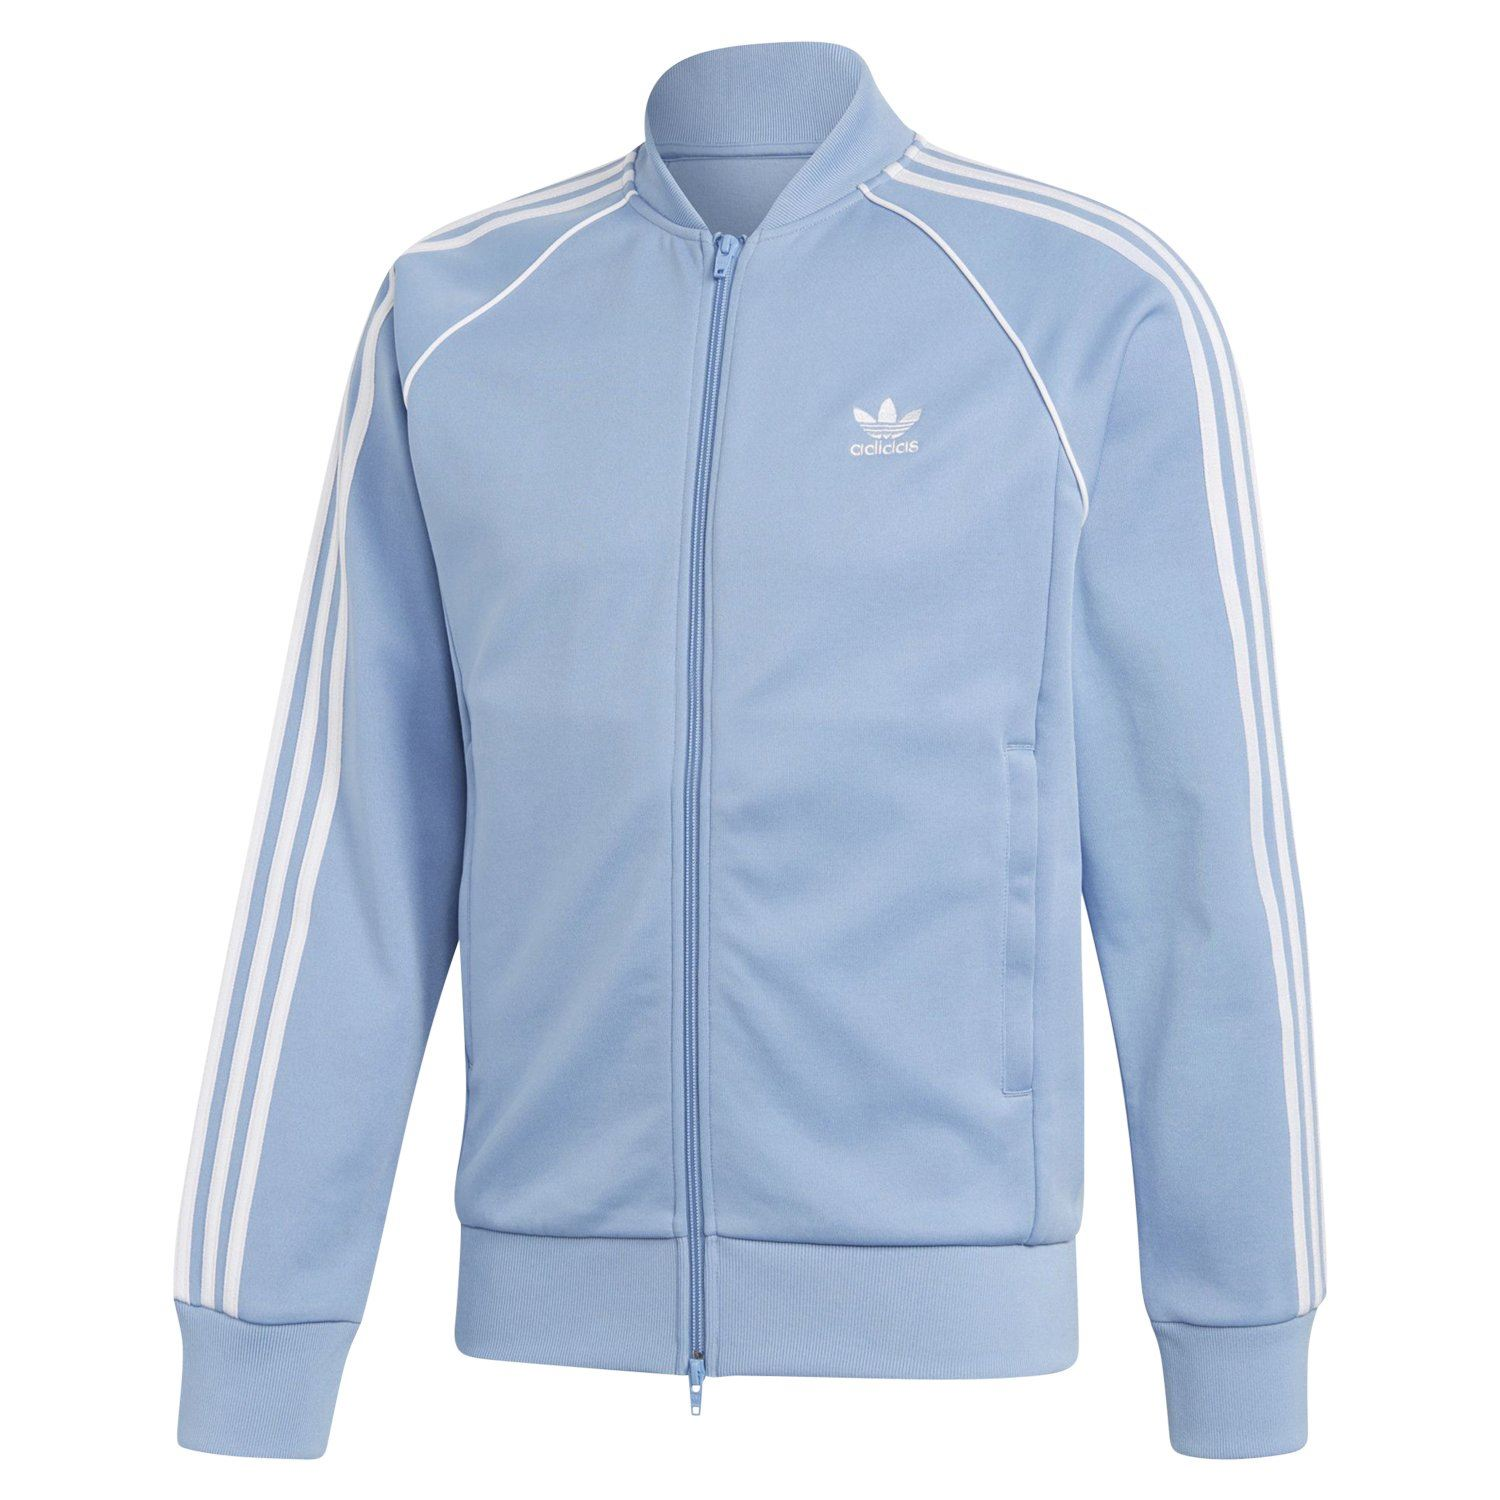 380a68003a8b Details about adidas ORIGINALS SUPERSTAR TRACK JACKET SKY BLUE MEN S RETRO  JACKET TREFOIL NEW